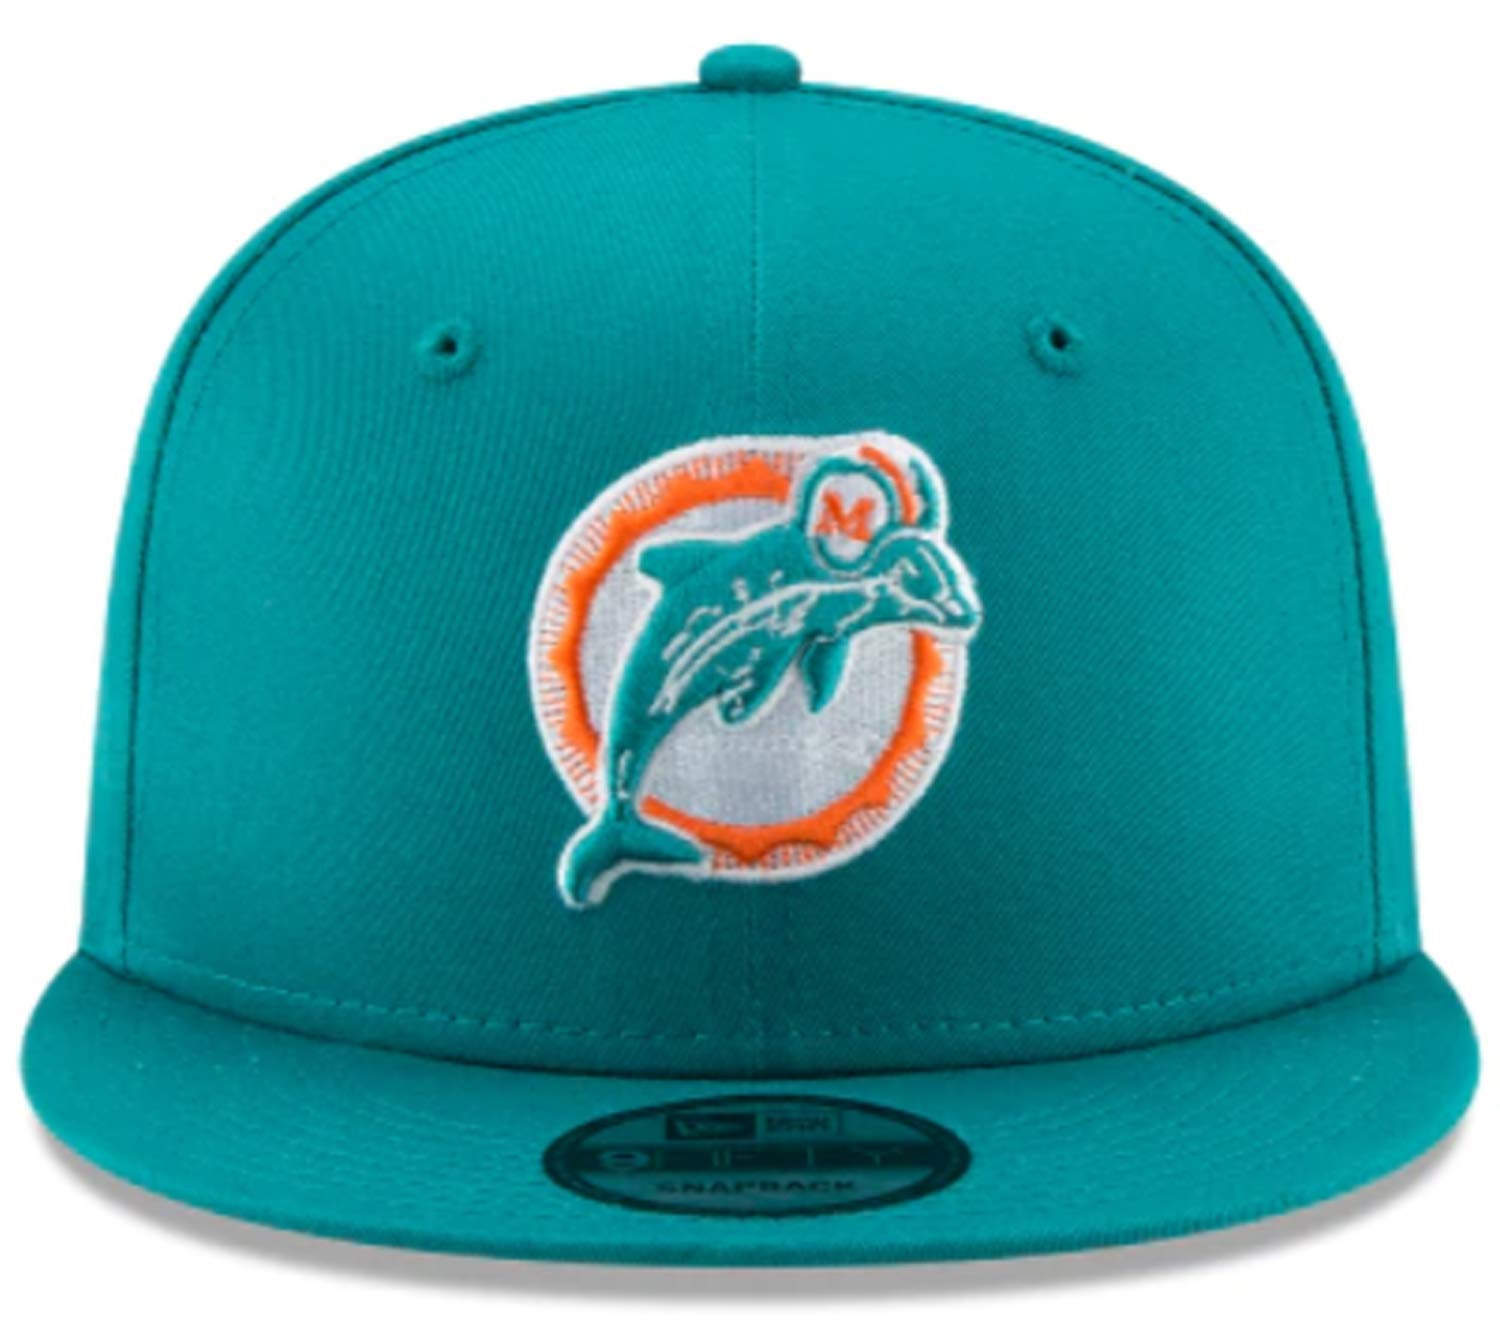 05f74efa Amazon.com : New Era Miami Dolphins Hat NFL Teal Team Color Historic ...